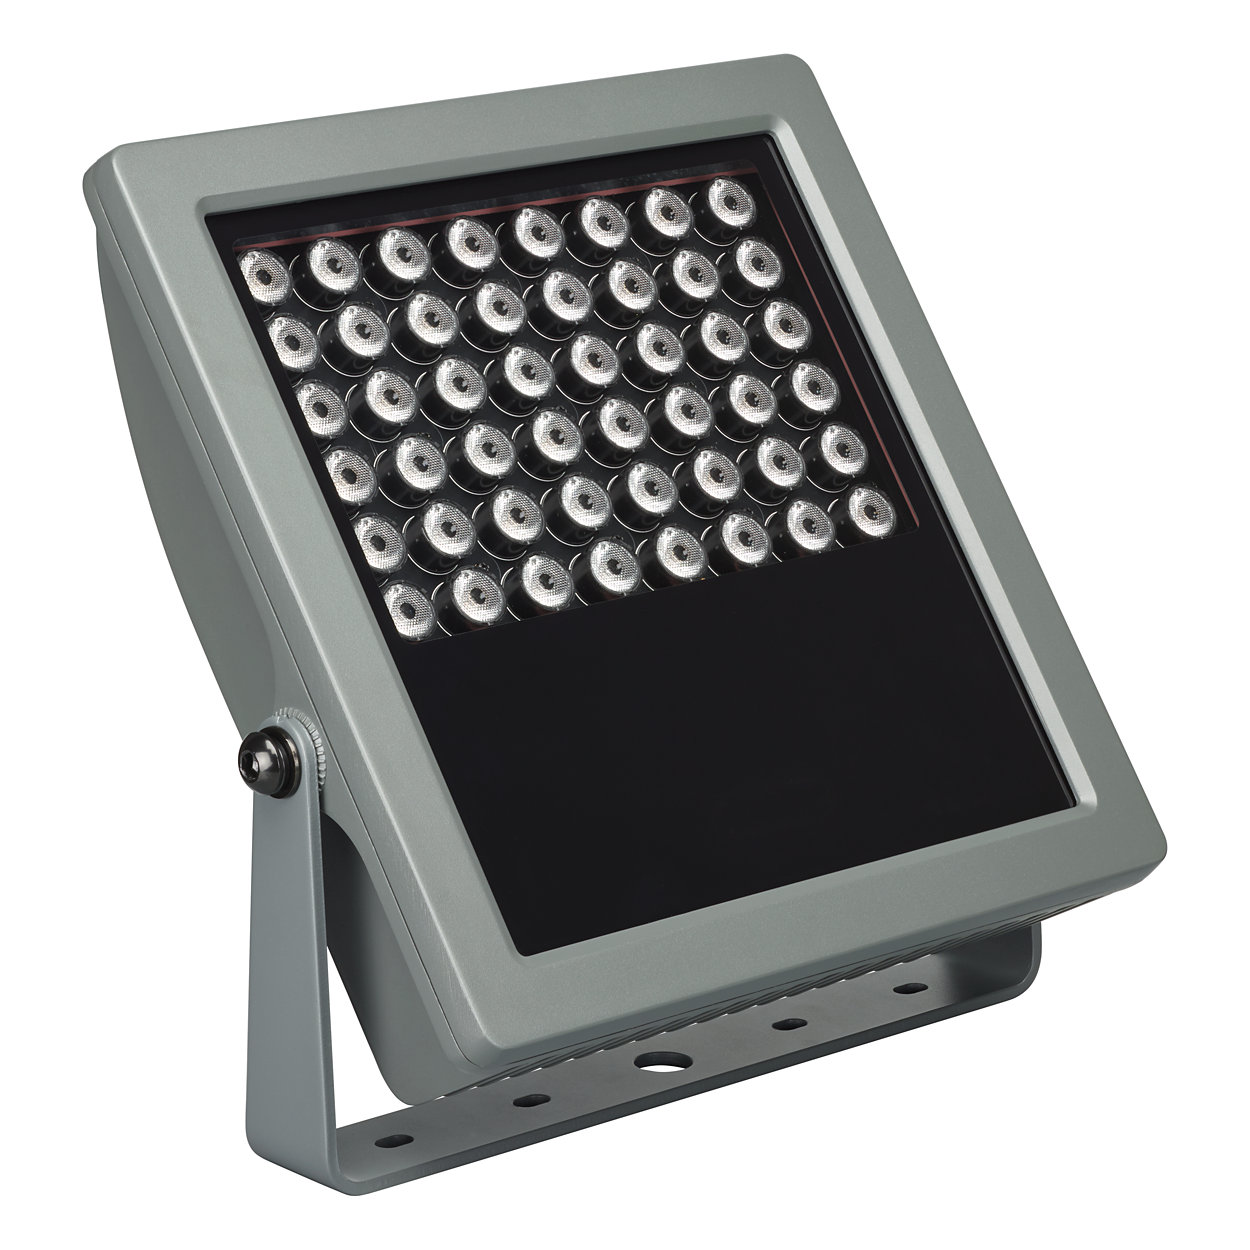 Vaya Flood HP – High power architectural LED flood light for dynamic color-changing or crisp white lighting effects